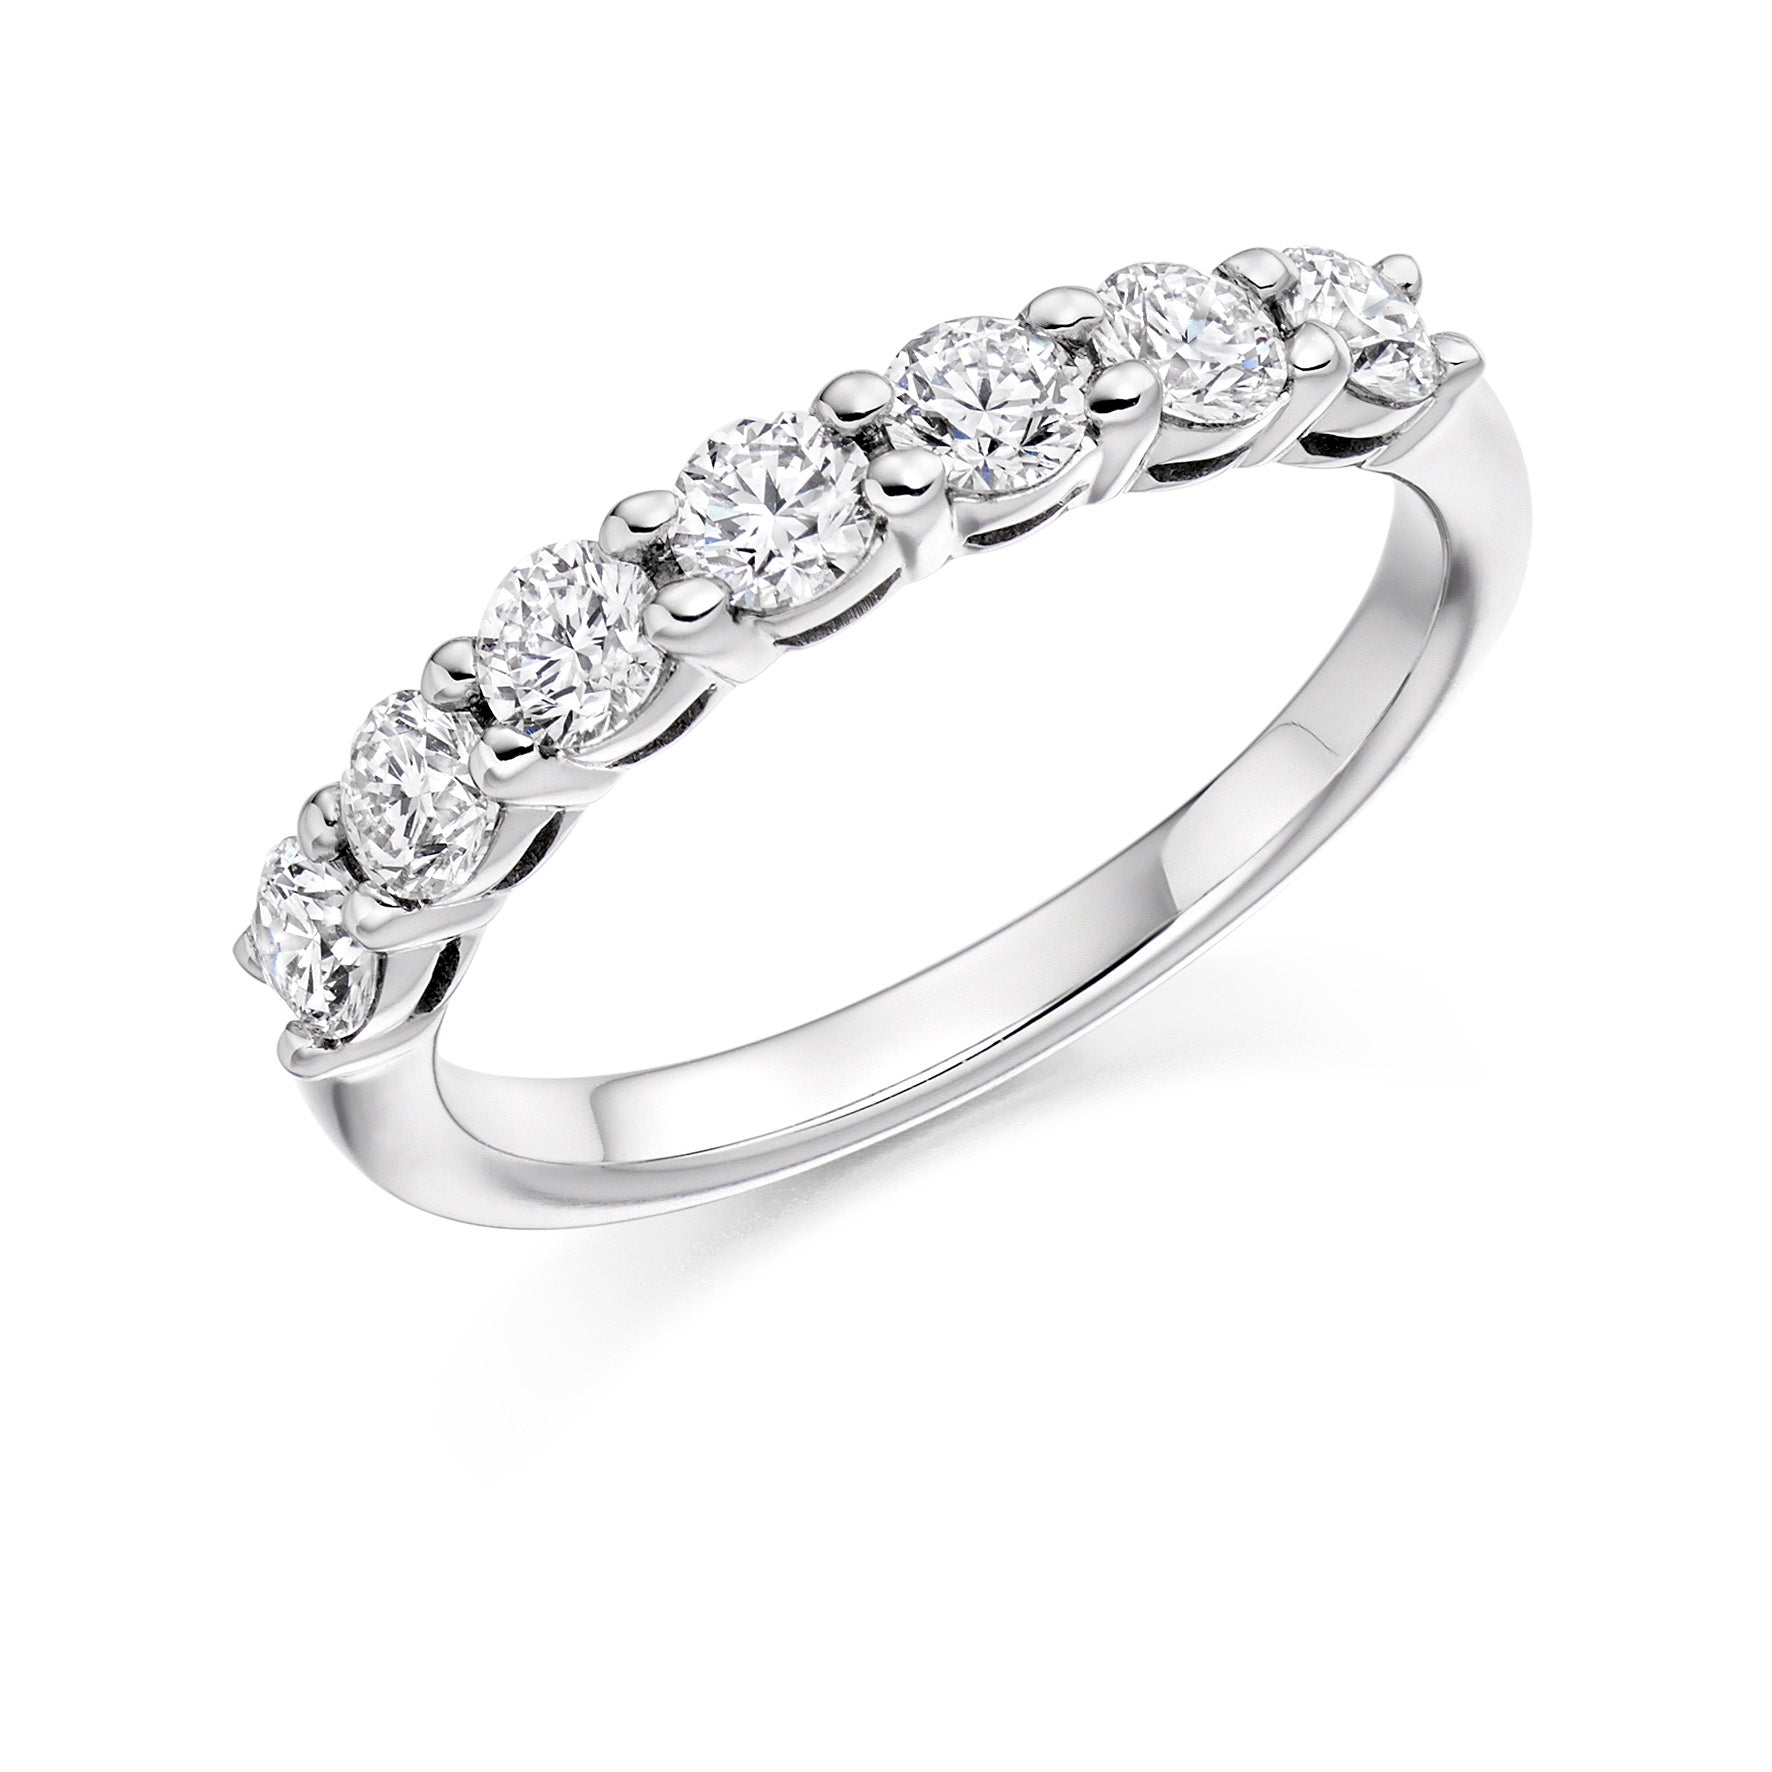 18ct White Gold 0.75ct Round Brilliant Cut Diamonds Wedding Ring